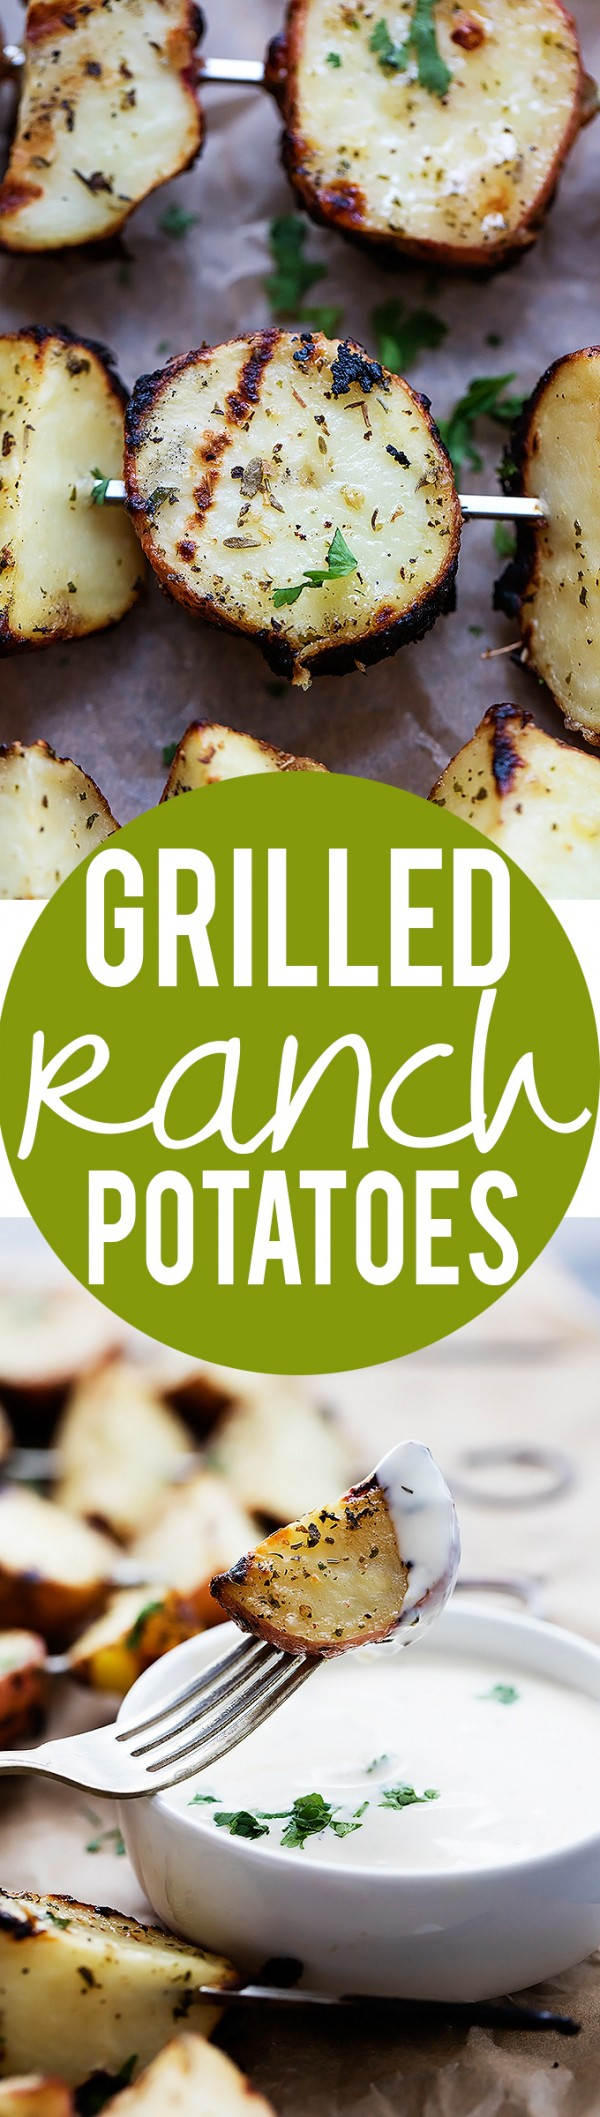 Get the recipe Grilled Ranch Potatoes @recipes_to_go